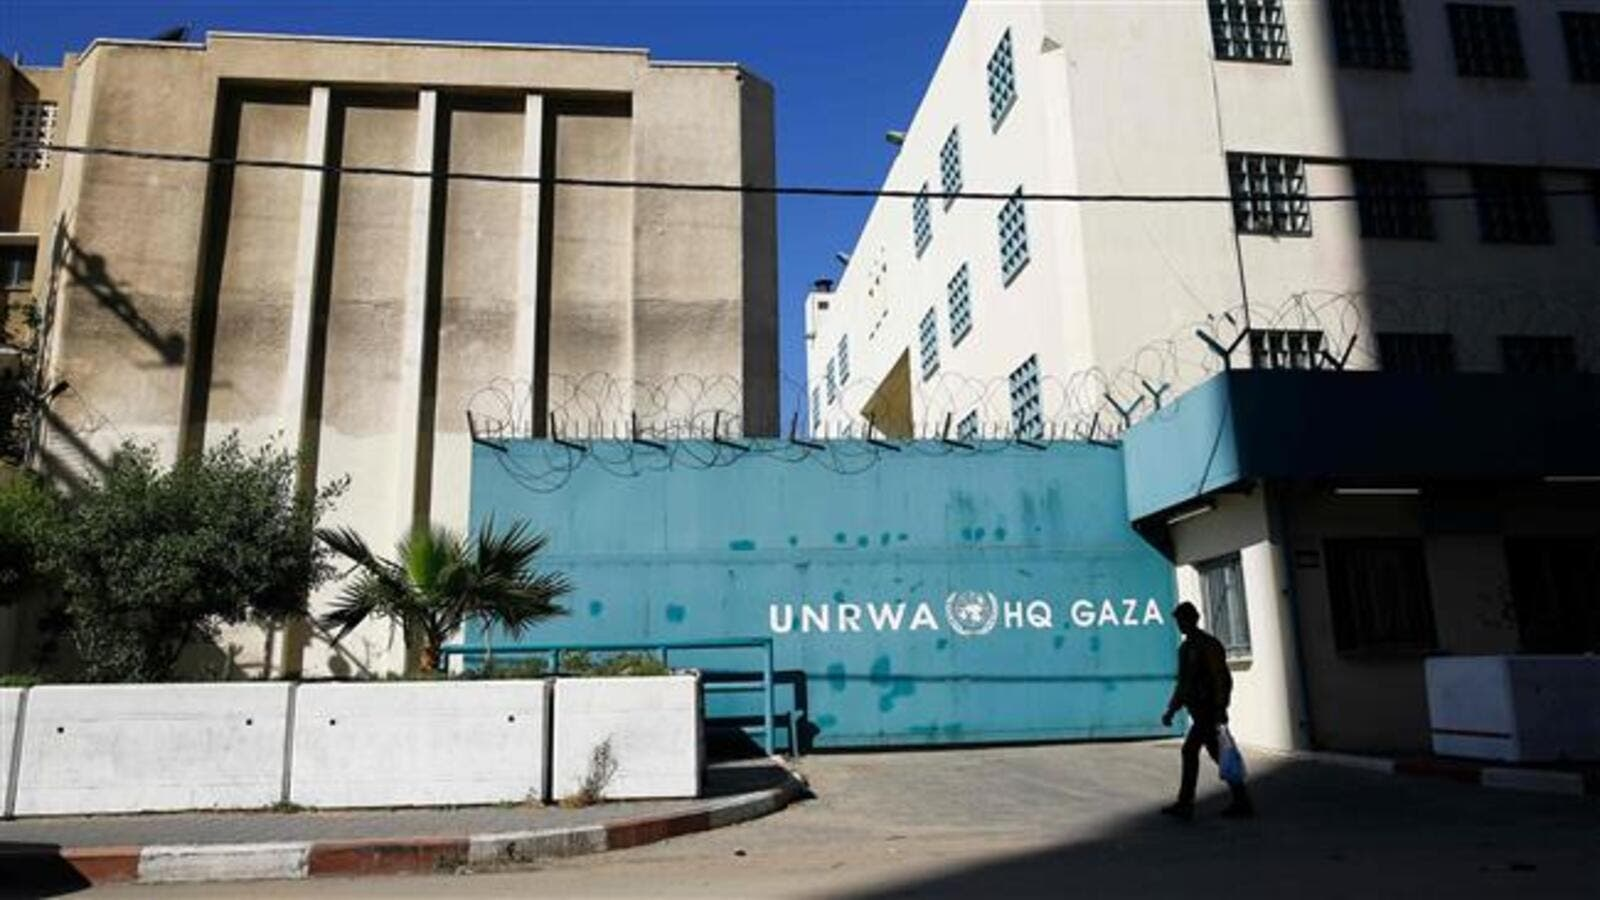 A Palestinian man walks past the building of the UNRWA headquarters in Gaza City on January 8, 2018. (AFP/ File Photo)